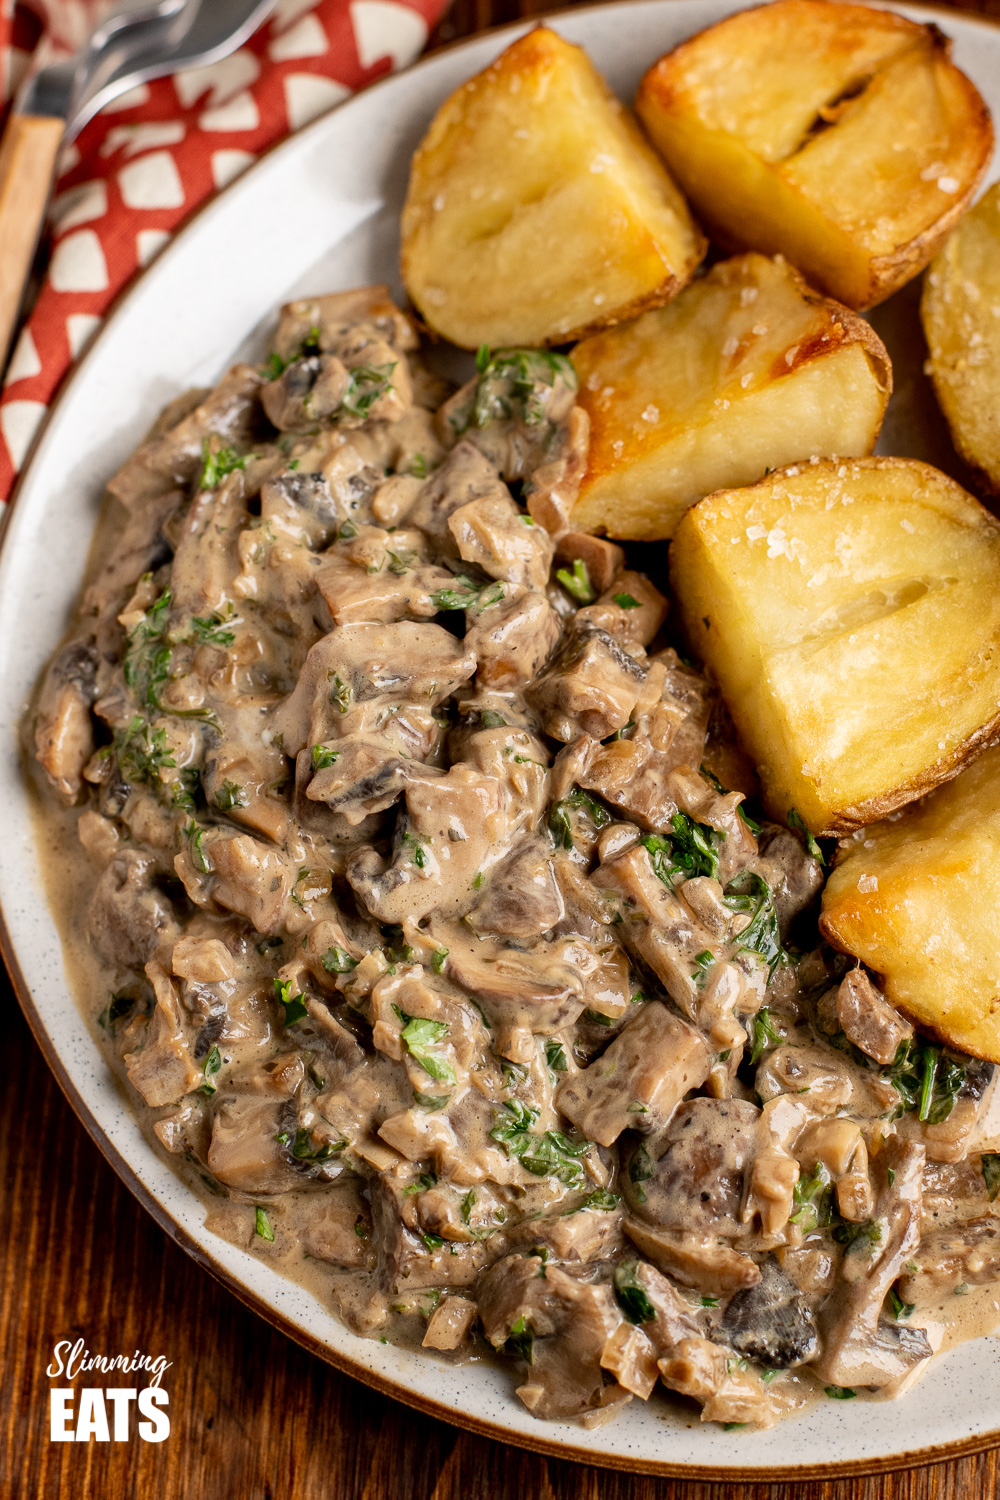 close up of creamy garlic mushrooms on plate with roasted jacket potatoes.